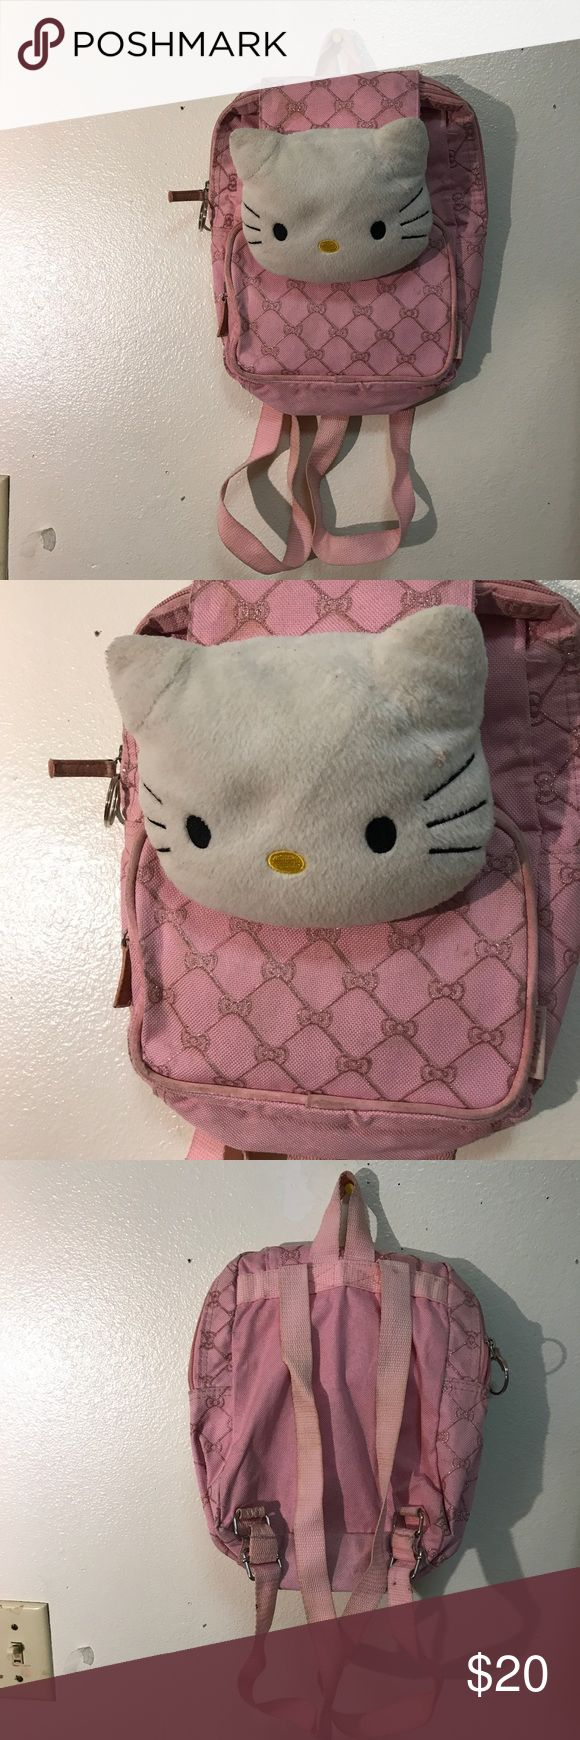 Hello Kitty Backpack worn out Bags Backpacks